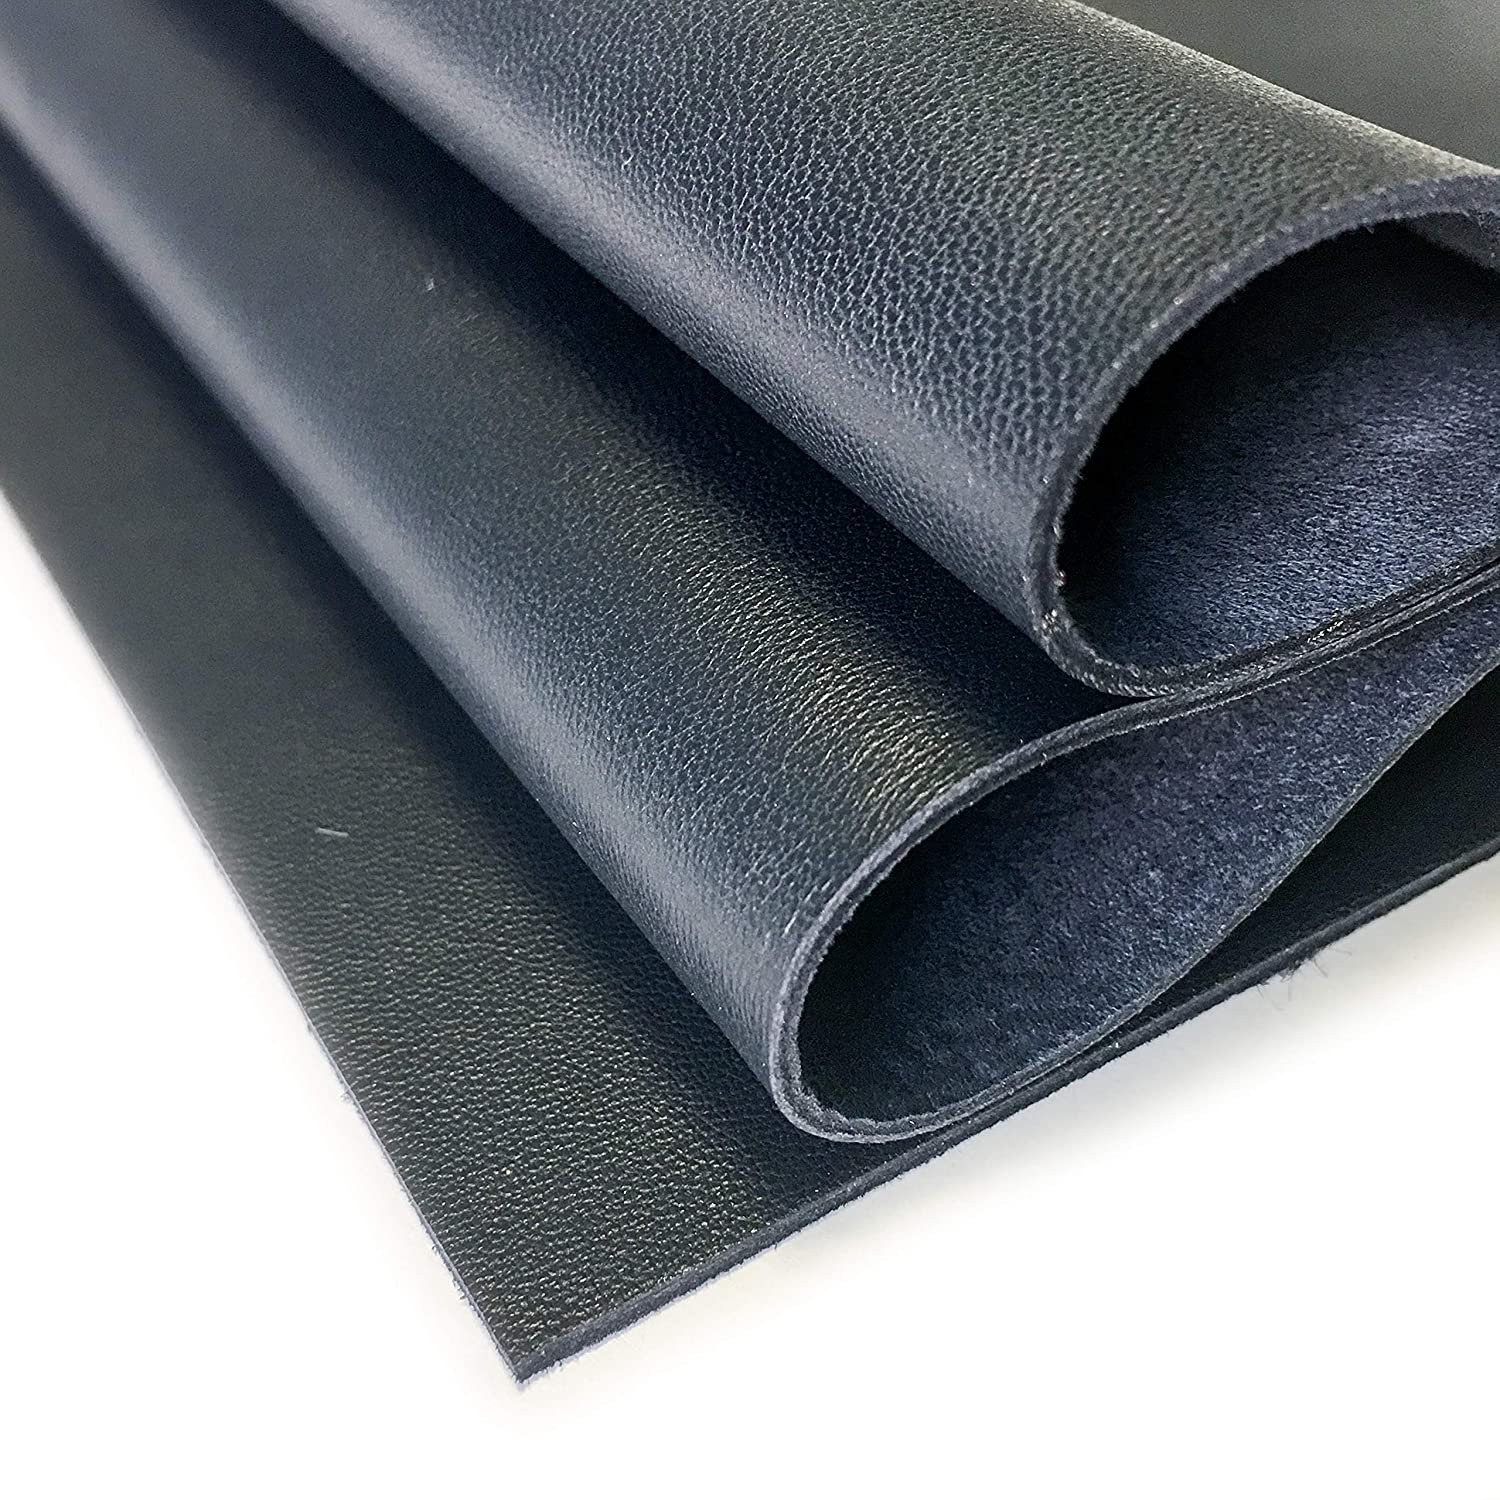 1 Durable Sheepskin Leather Sheet for Bookbinding 12x12In// 30x30cm Black Genuine Leather for Crafts